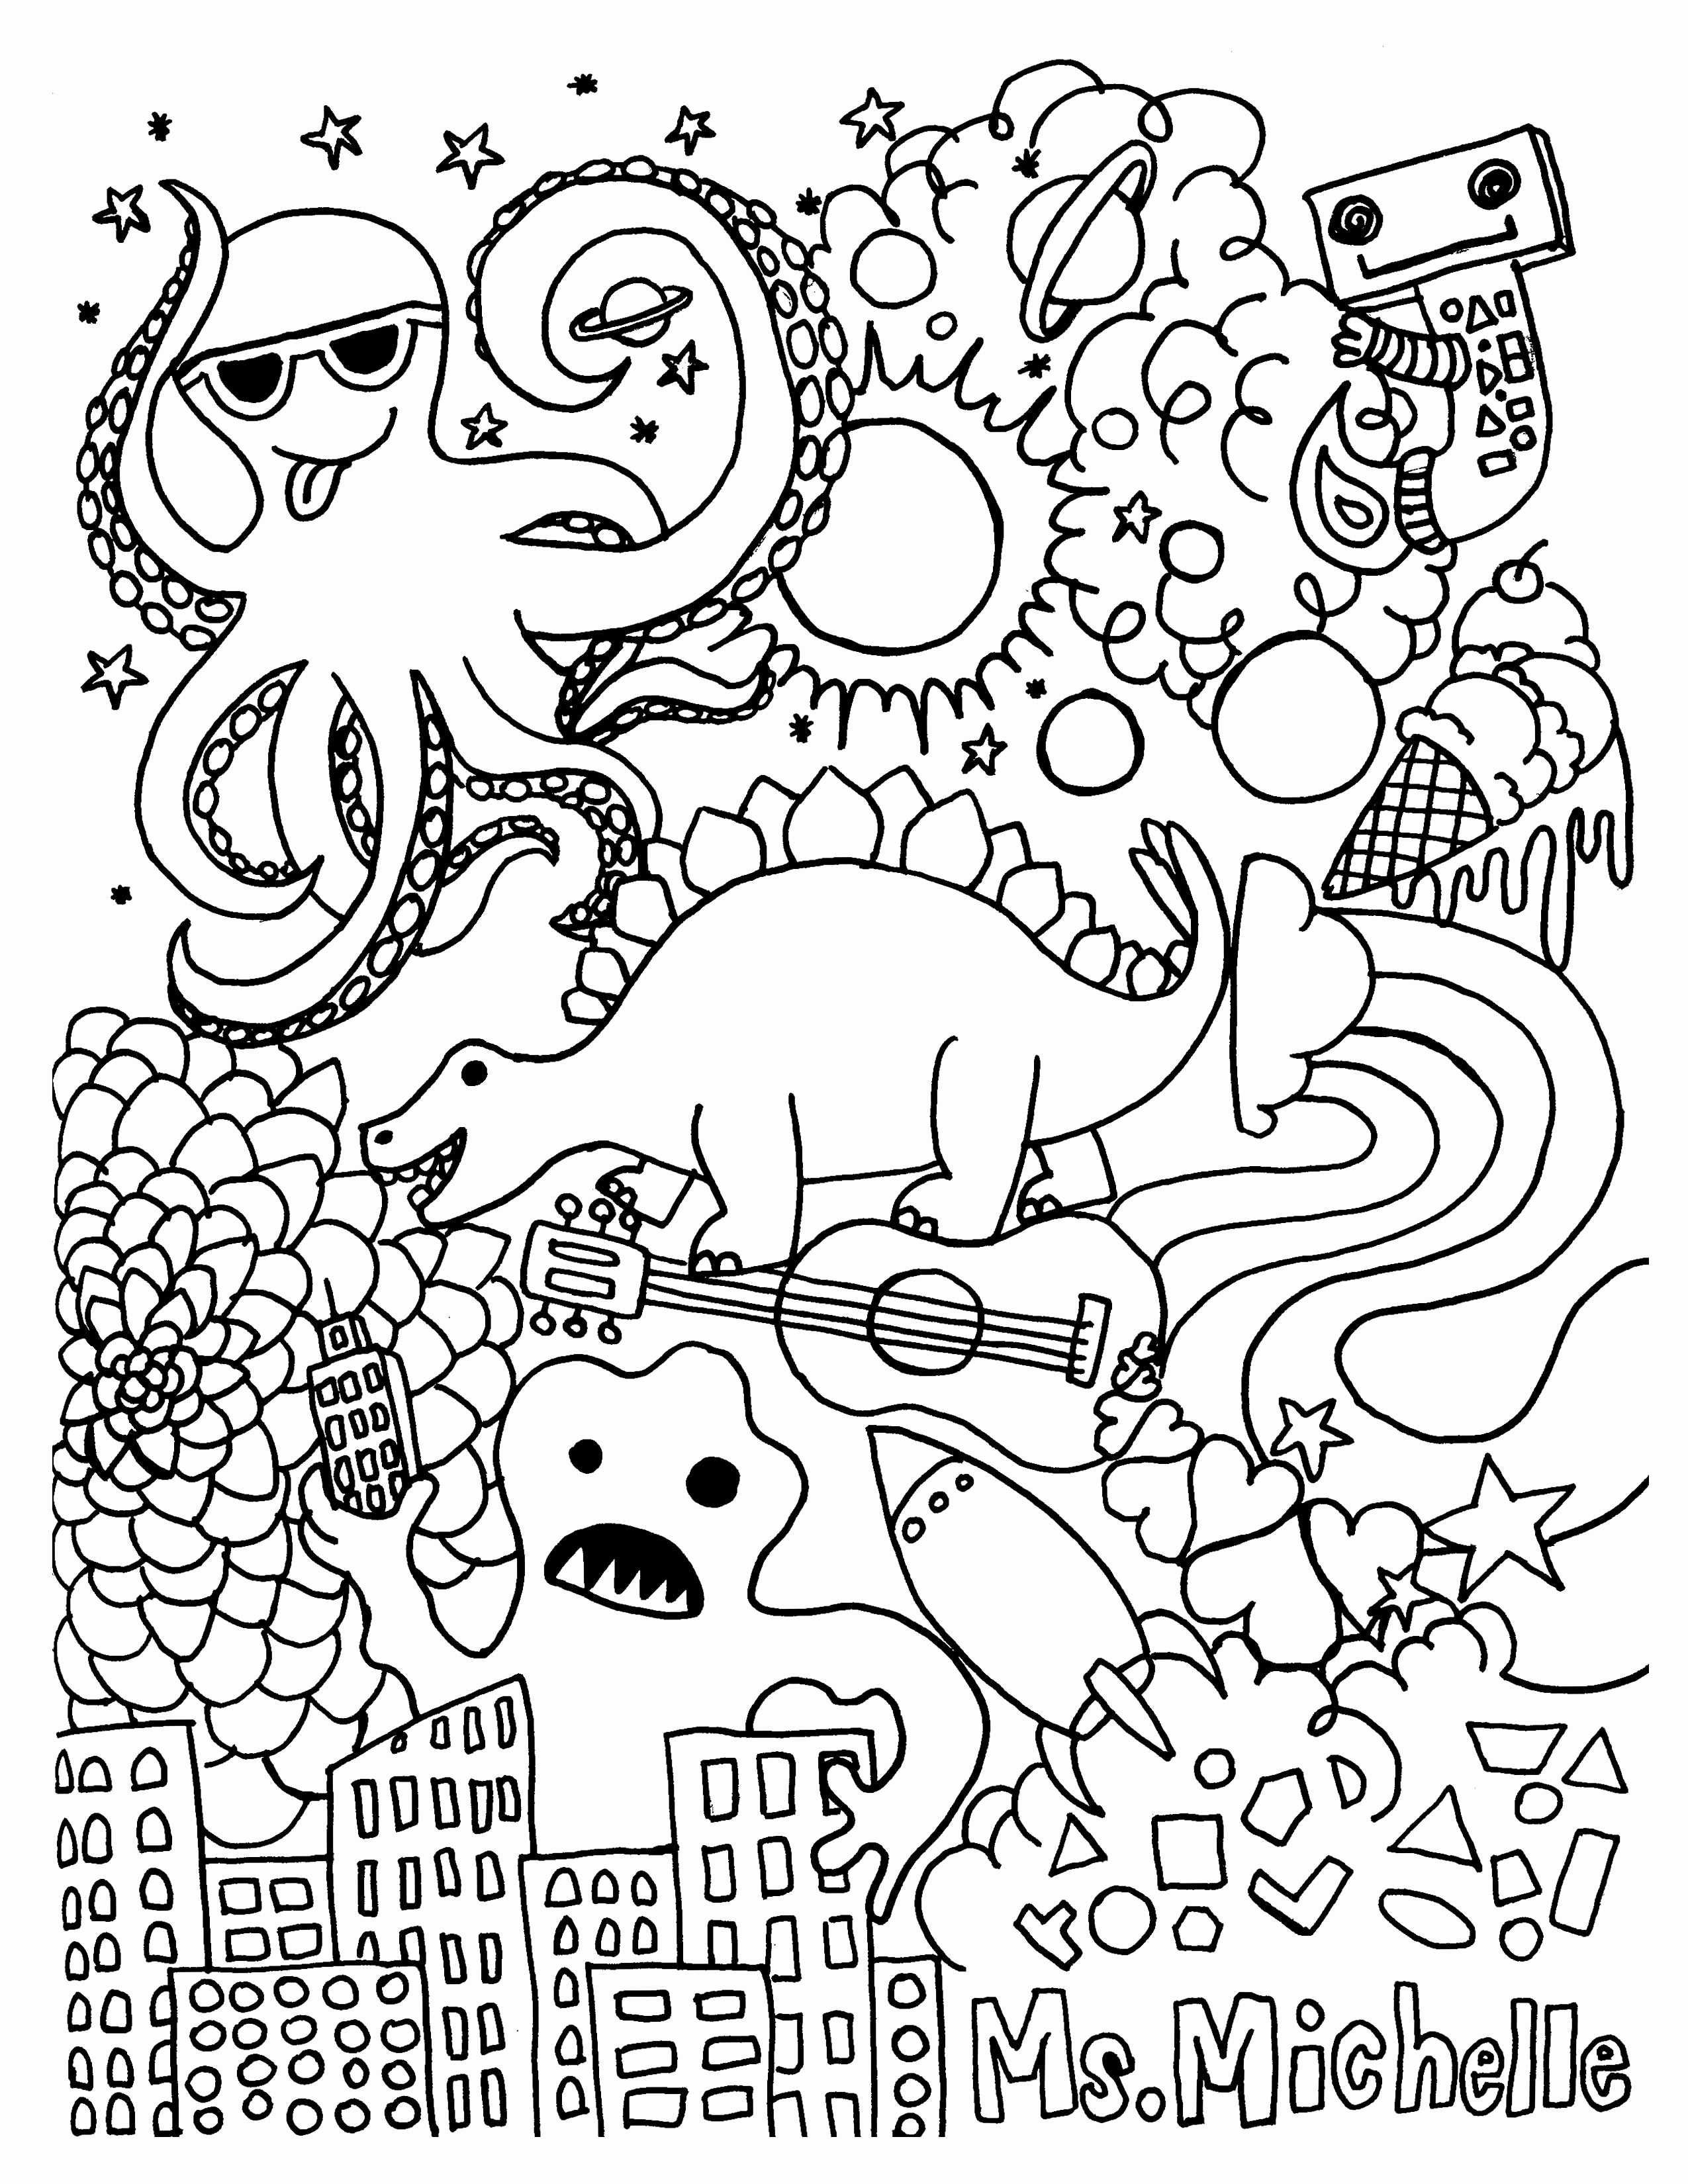 bible coloring pages for kids Download-Abc Coloring Pages Bible 2018 Free Coloring Pages for Halloween Ideas Halloween Videos for Kids 14-d